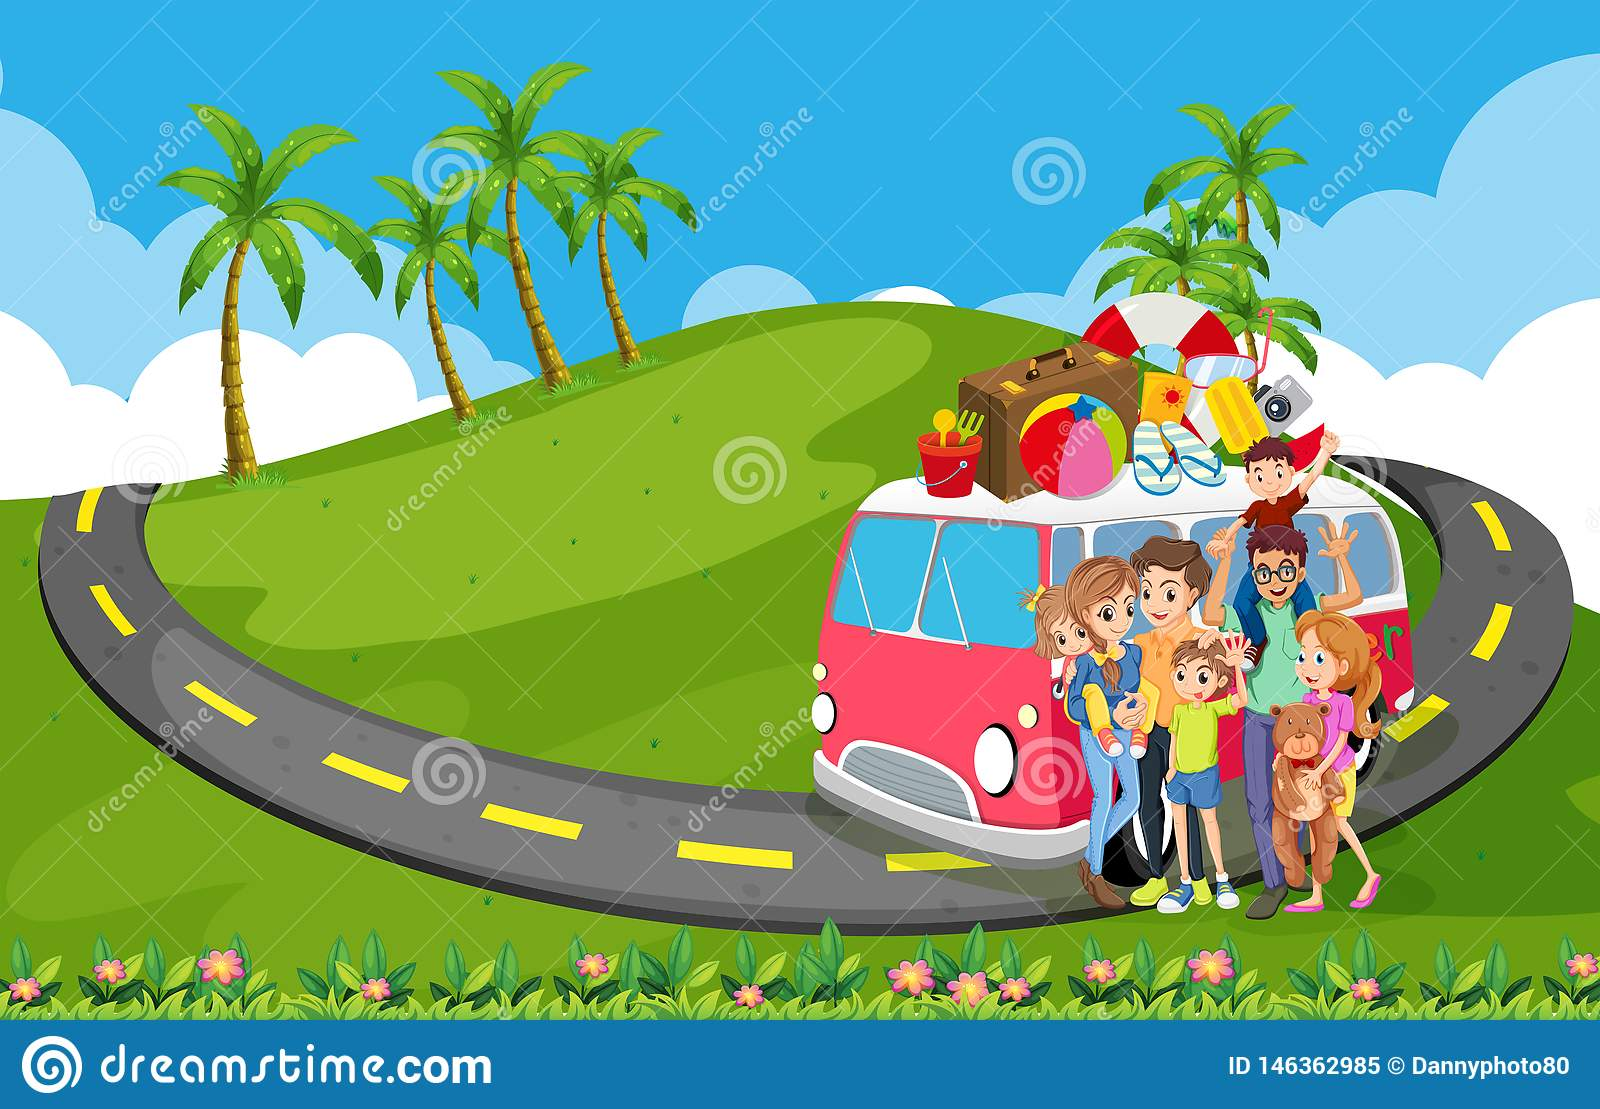 Family Trip To Nature Stock Vector Illustration Of Cartoon 146362985